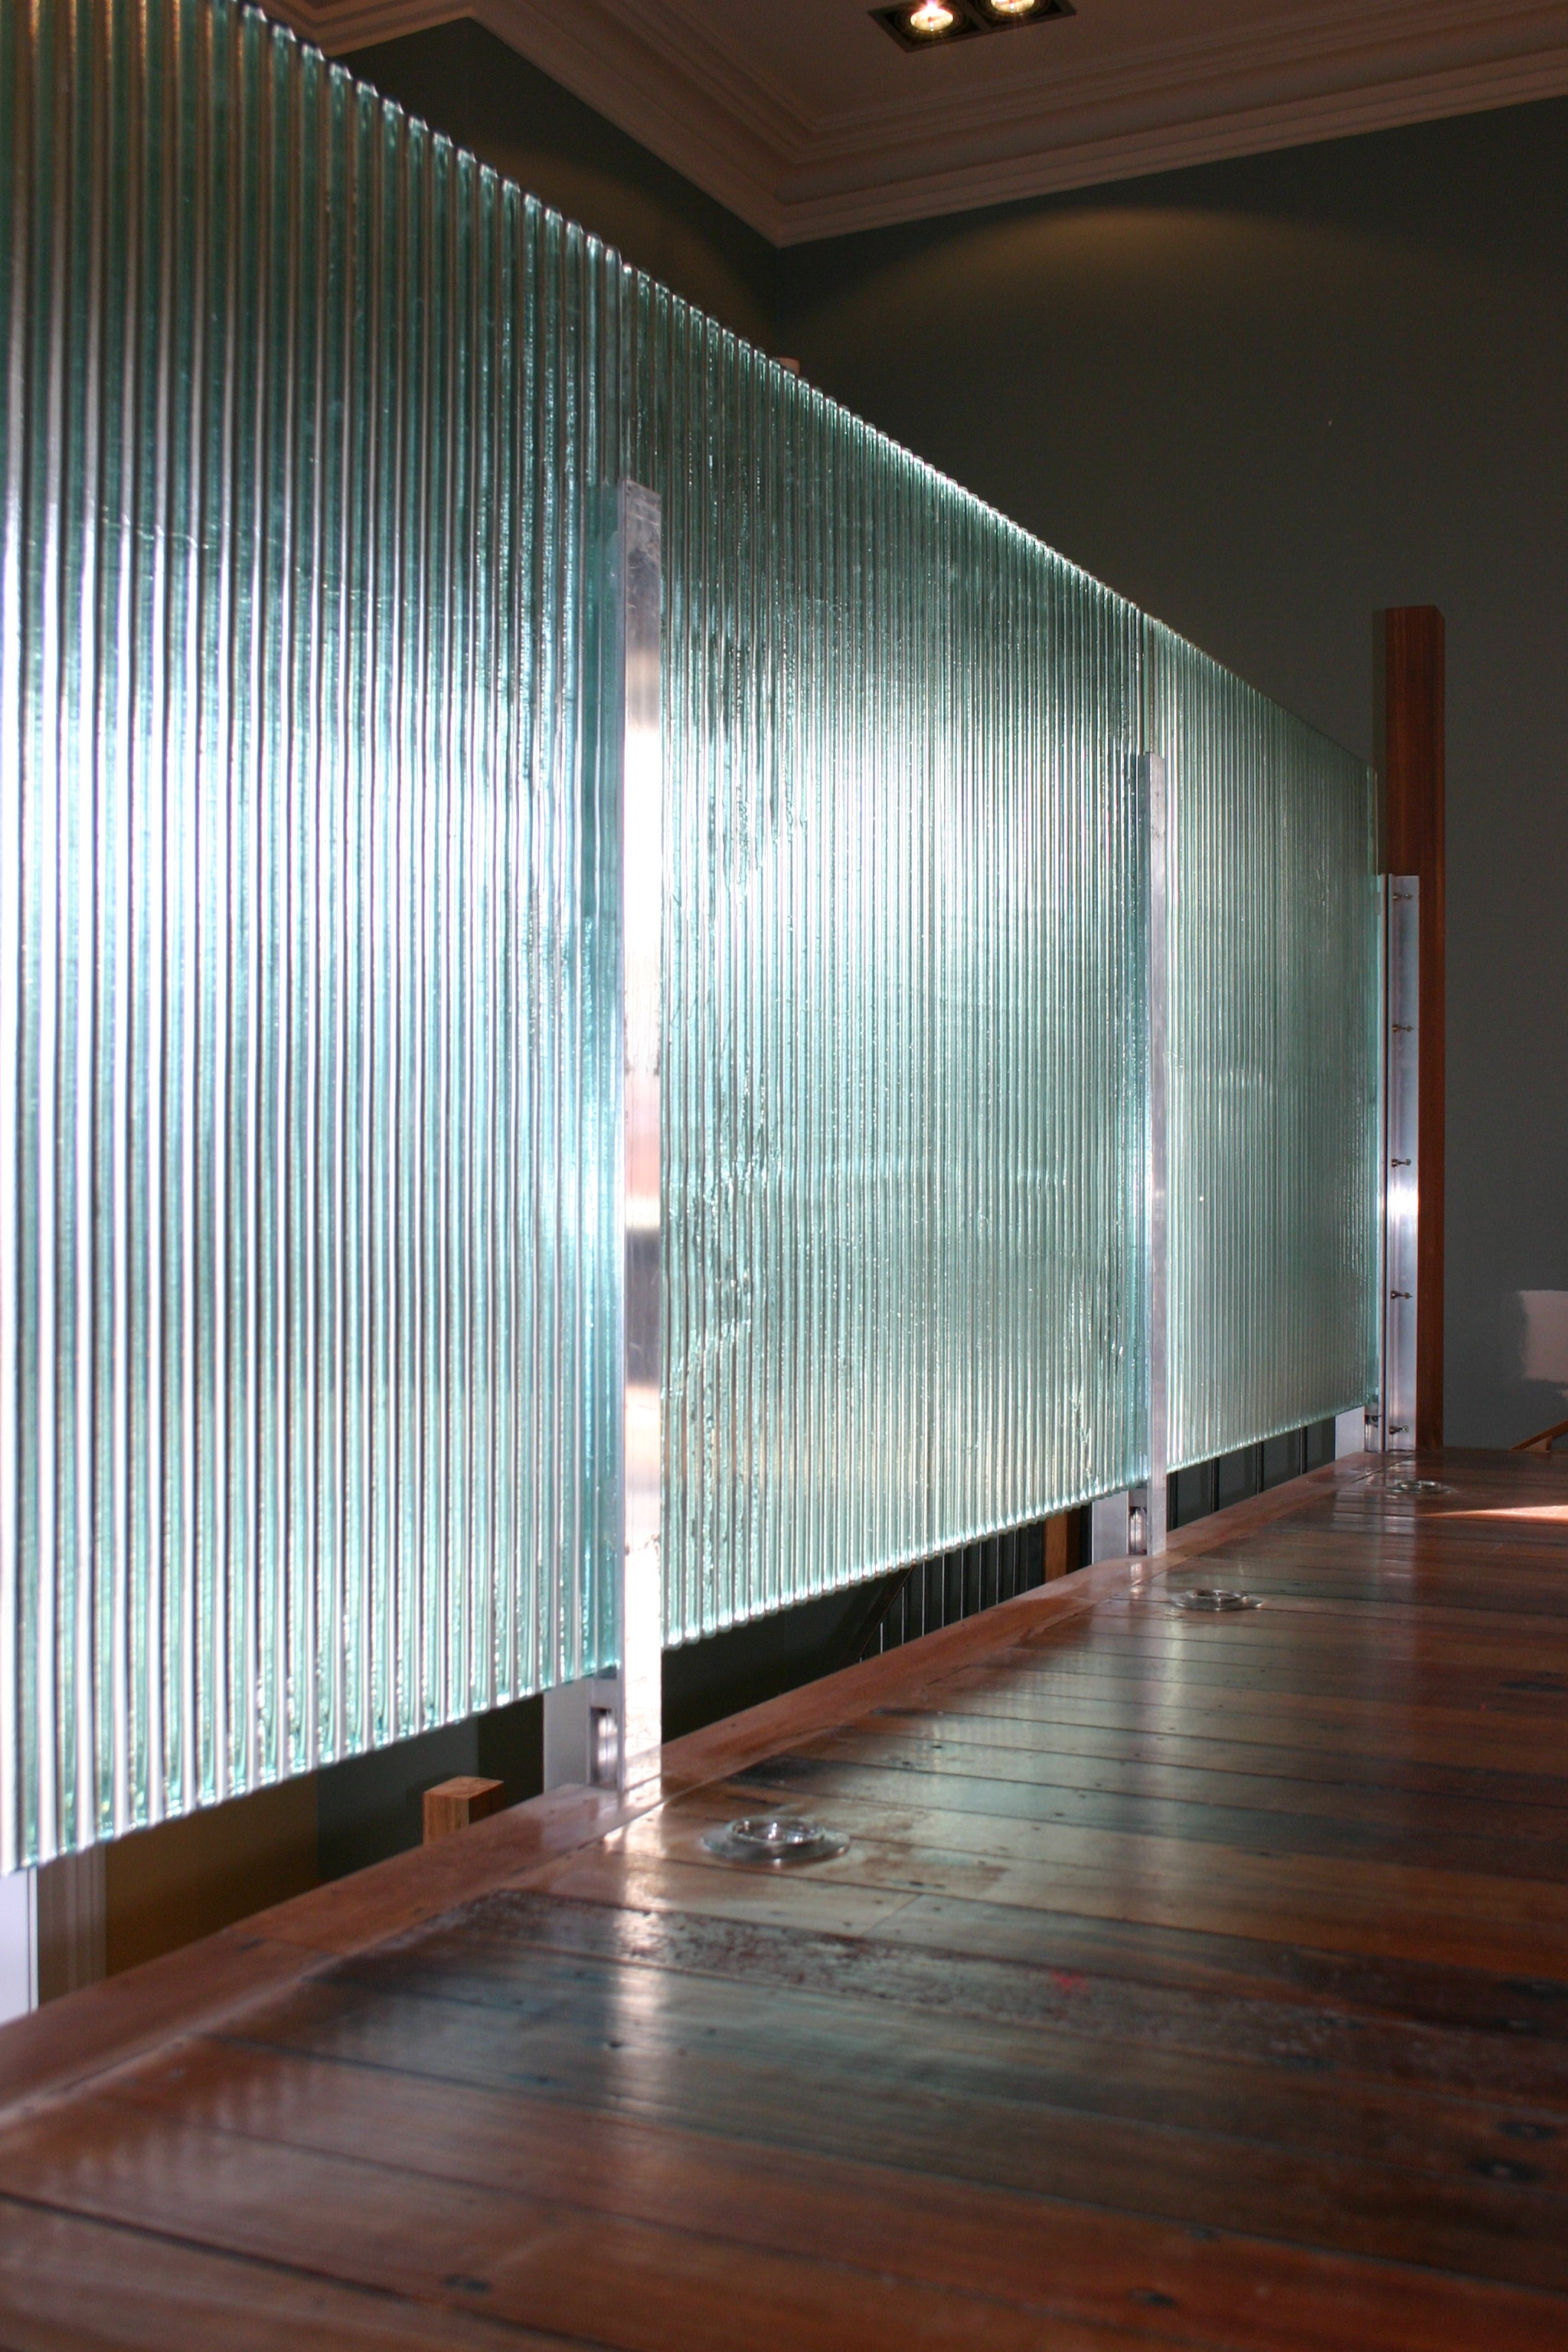 Broad reeded baby corrugate 10mm toughened safety glass - bathroom